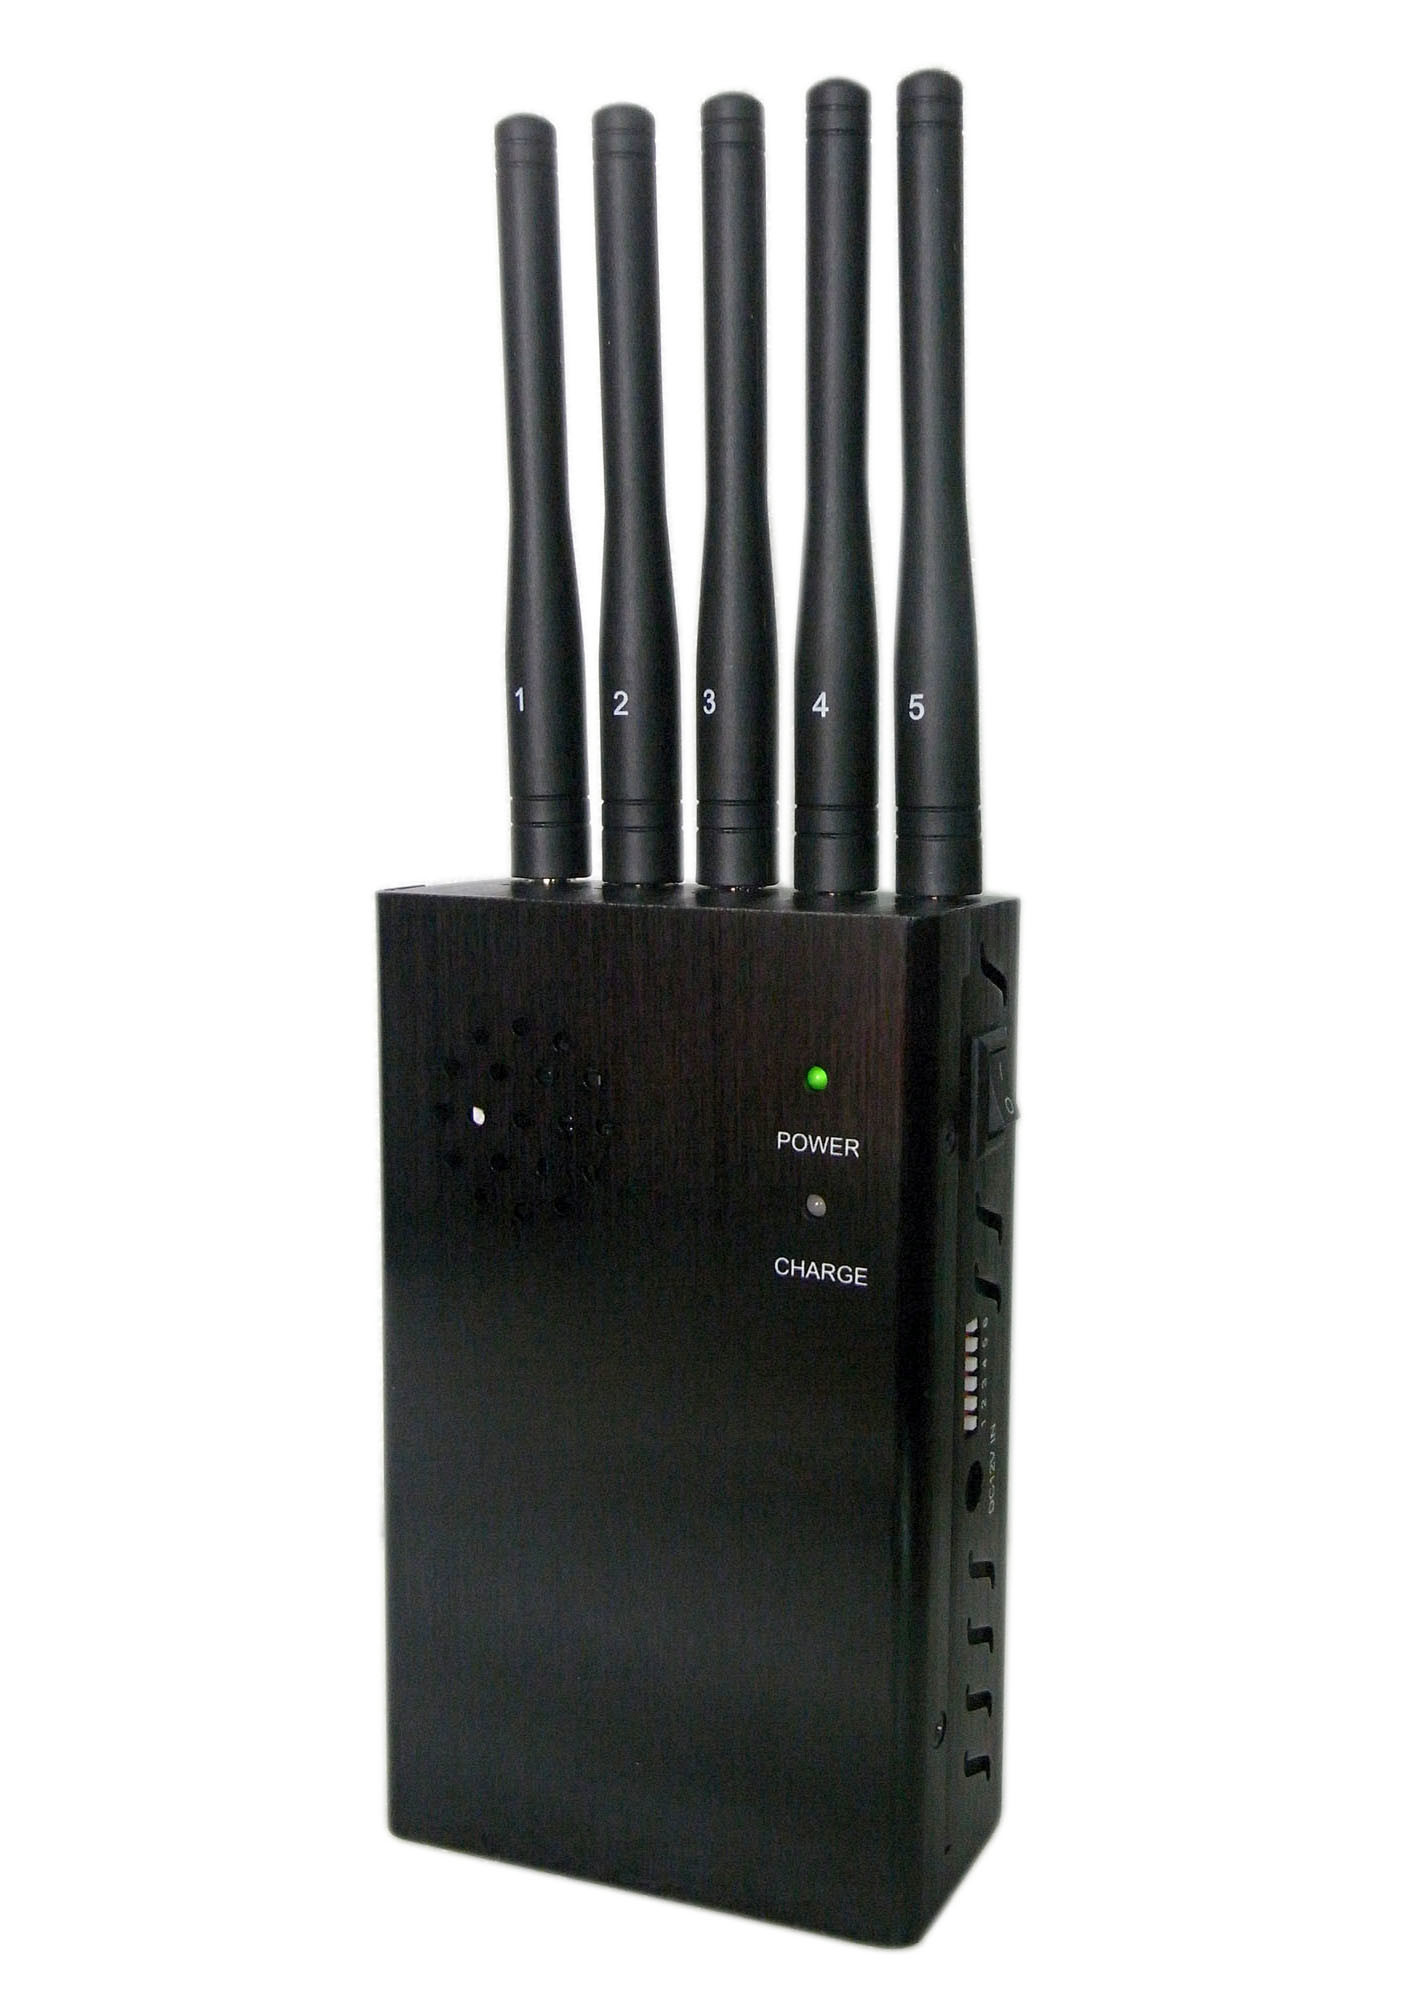 gps car tracker signal jammer instructions